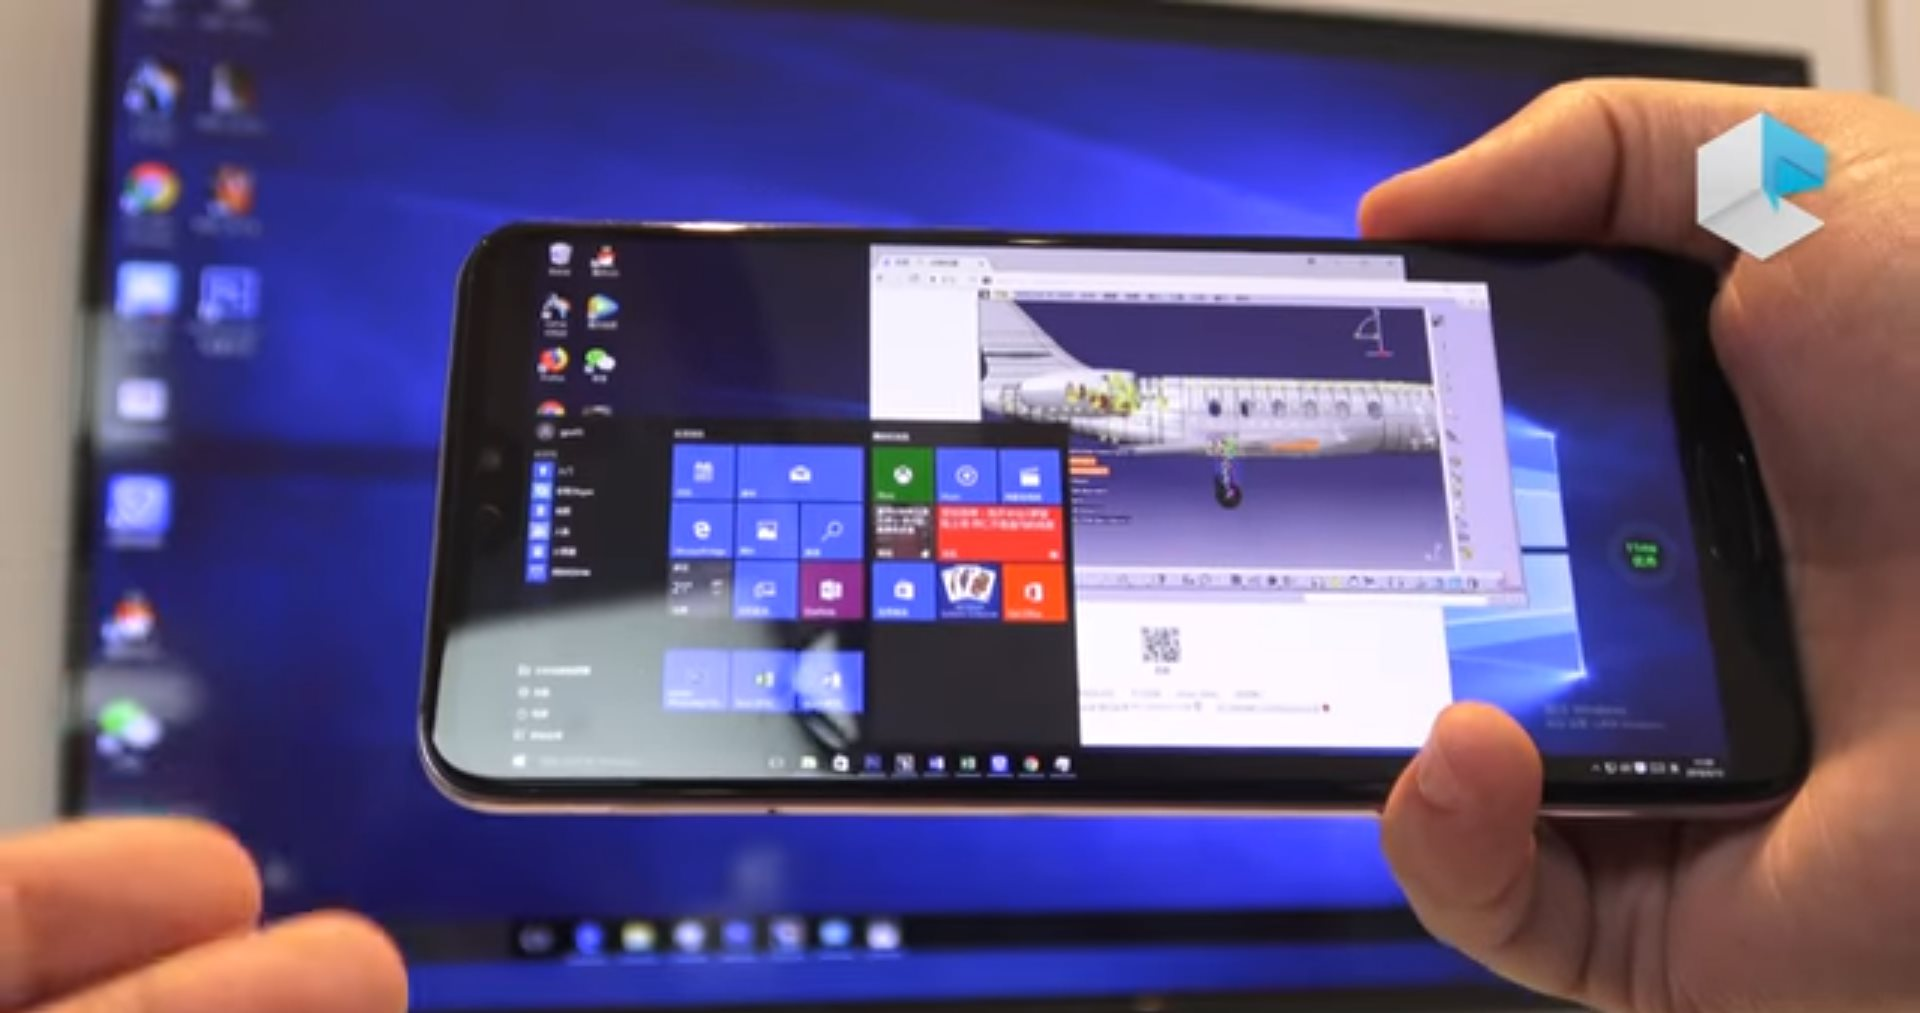 Android 10 Wallpaper: Full Windows 10 On Android Made Possible By Huawei